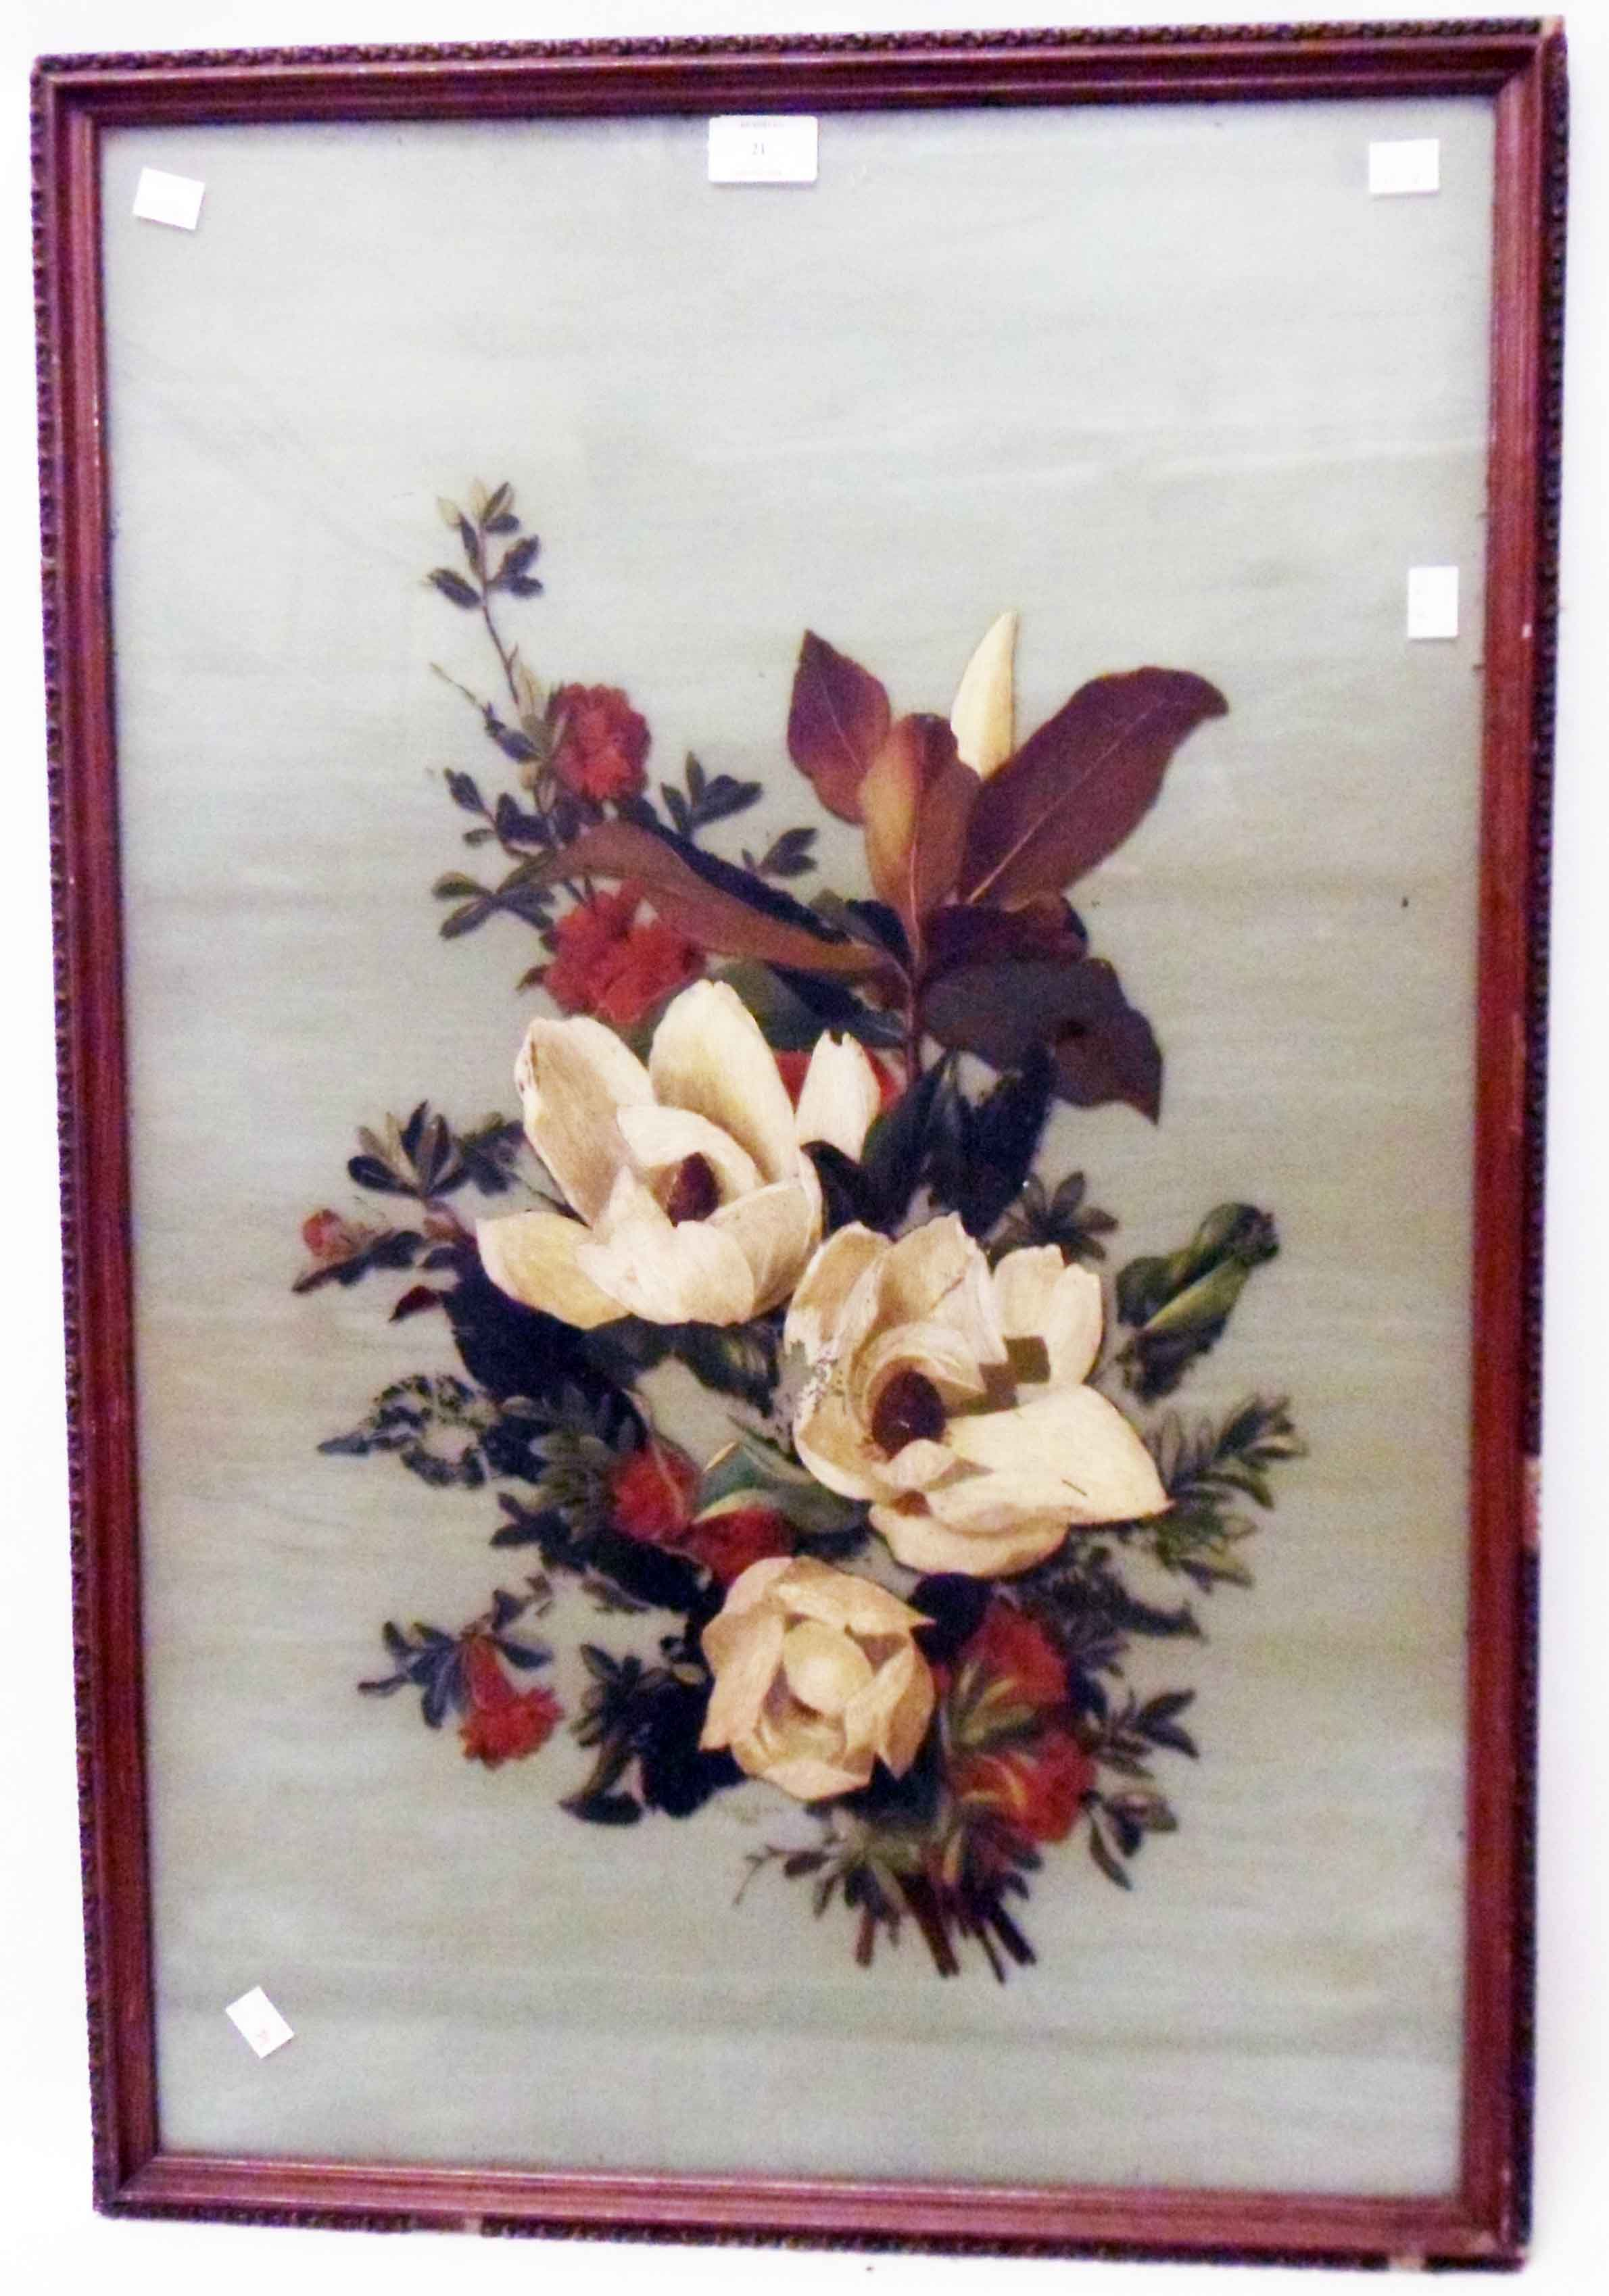 A framed oil painting on glass still life spray of flowers